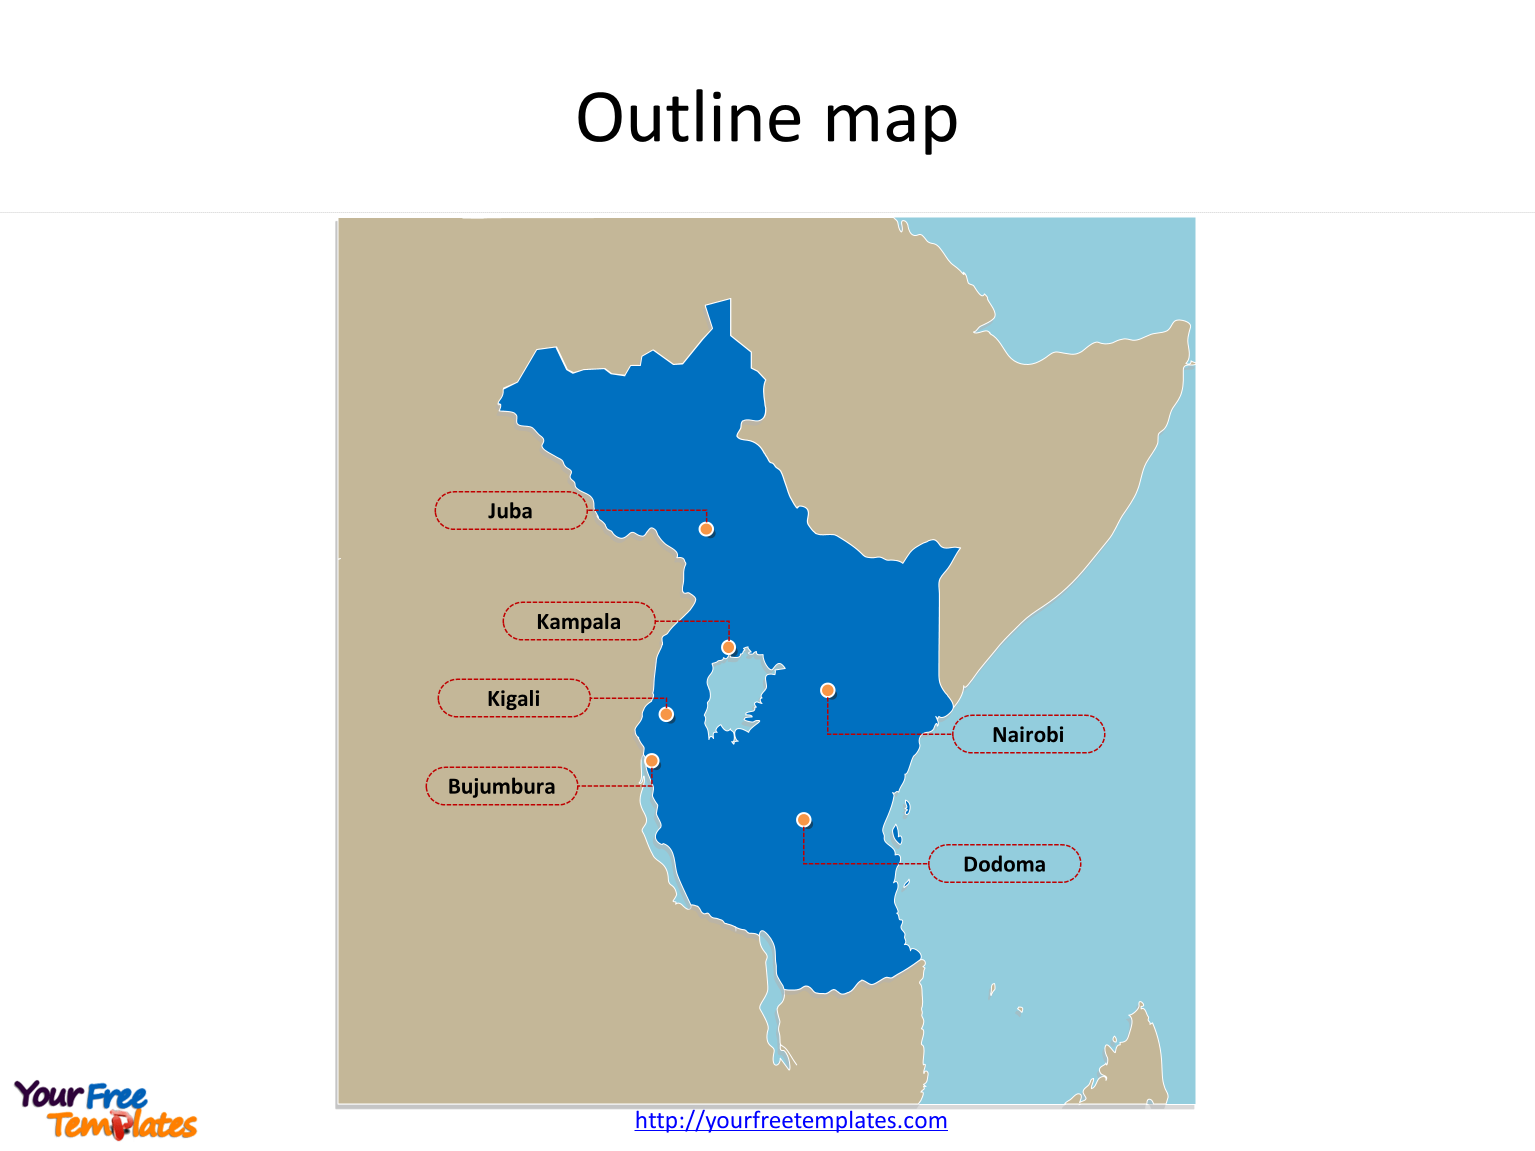 Map of East African Community with outline and cities labeled on the East African Community PowerPoint map